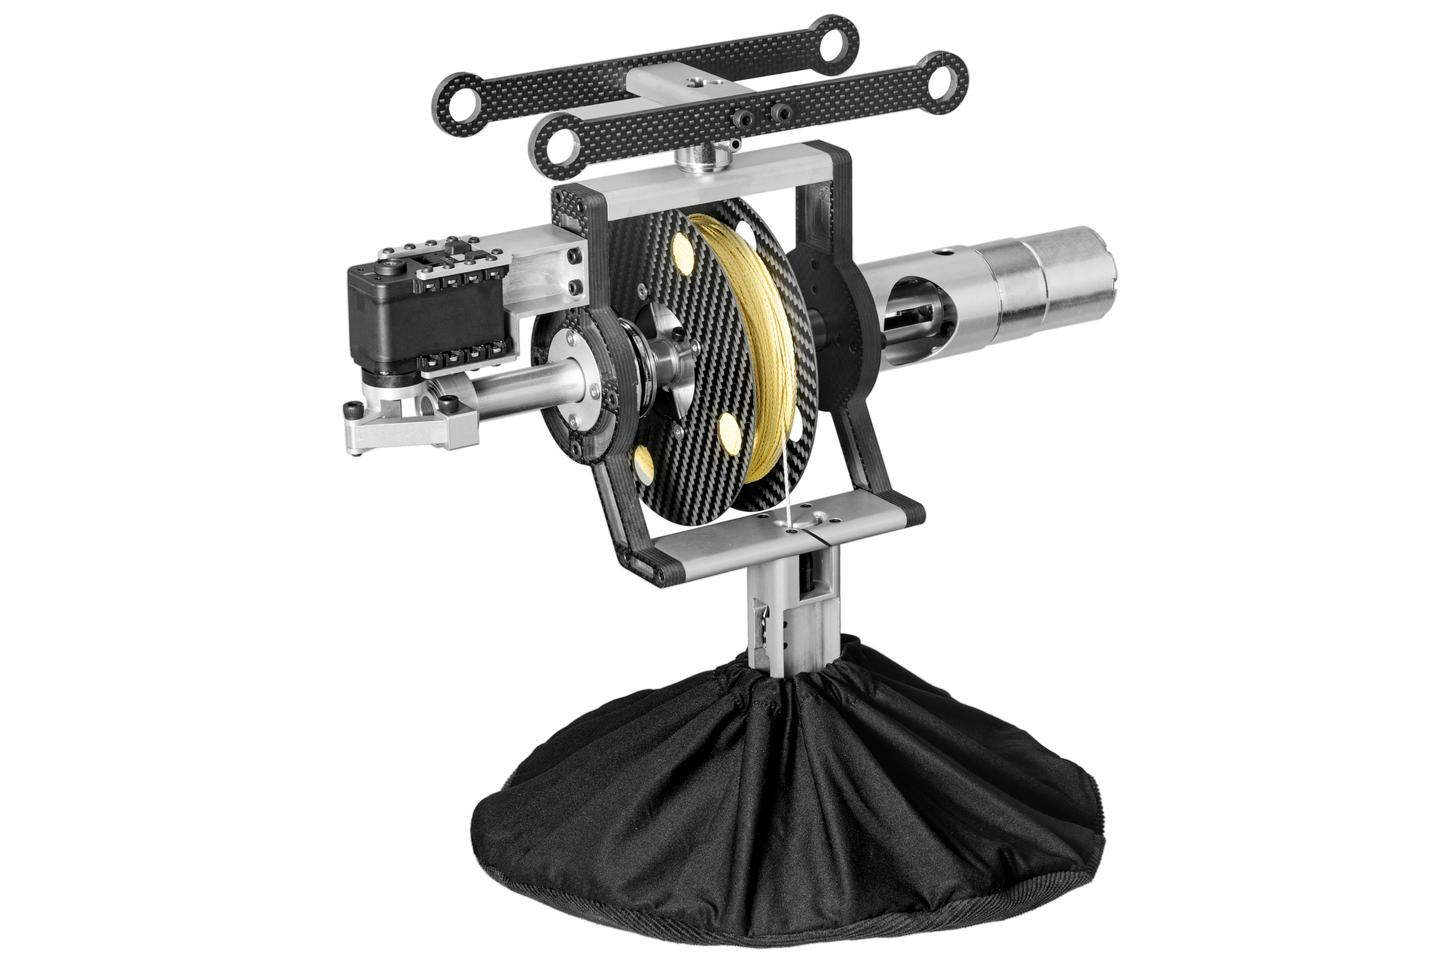 A closer look at the RDS1 reel system